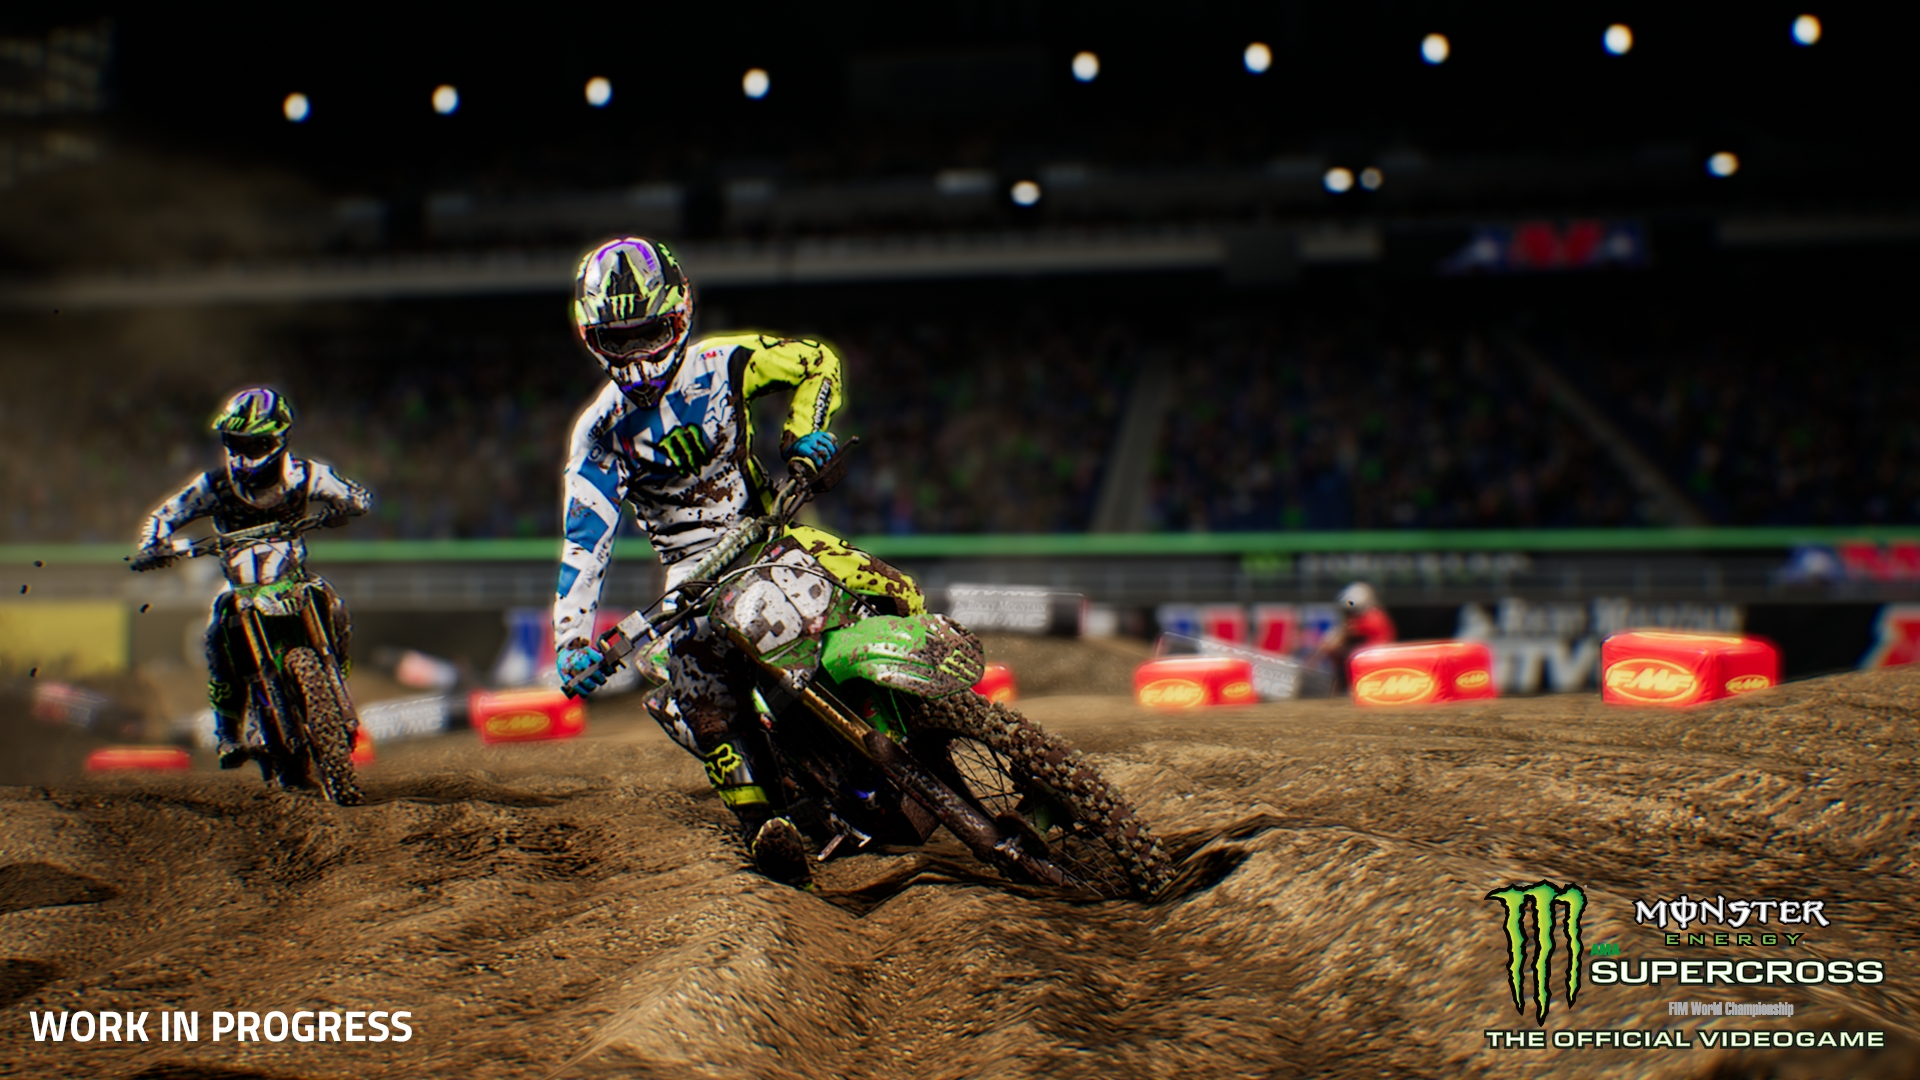 Monster Energy Supercross - The Official Videogame Preview - Milestone Hits Home